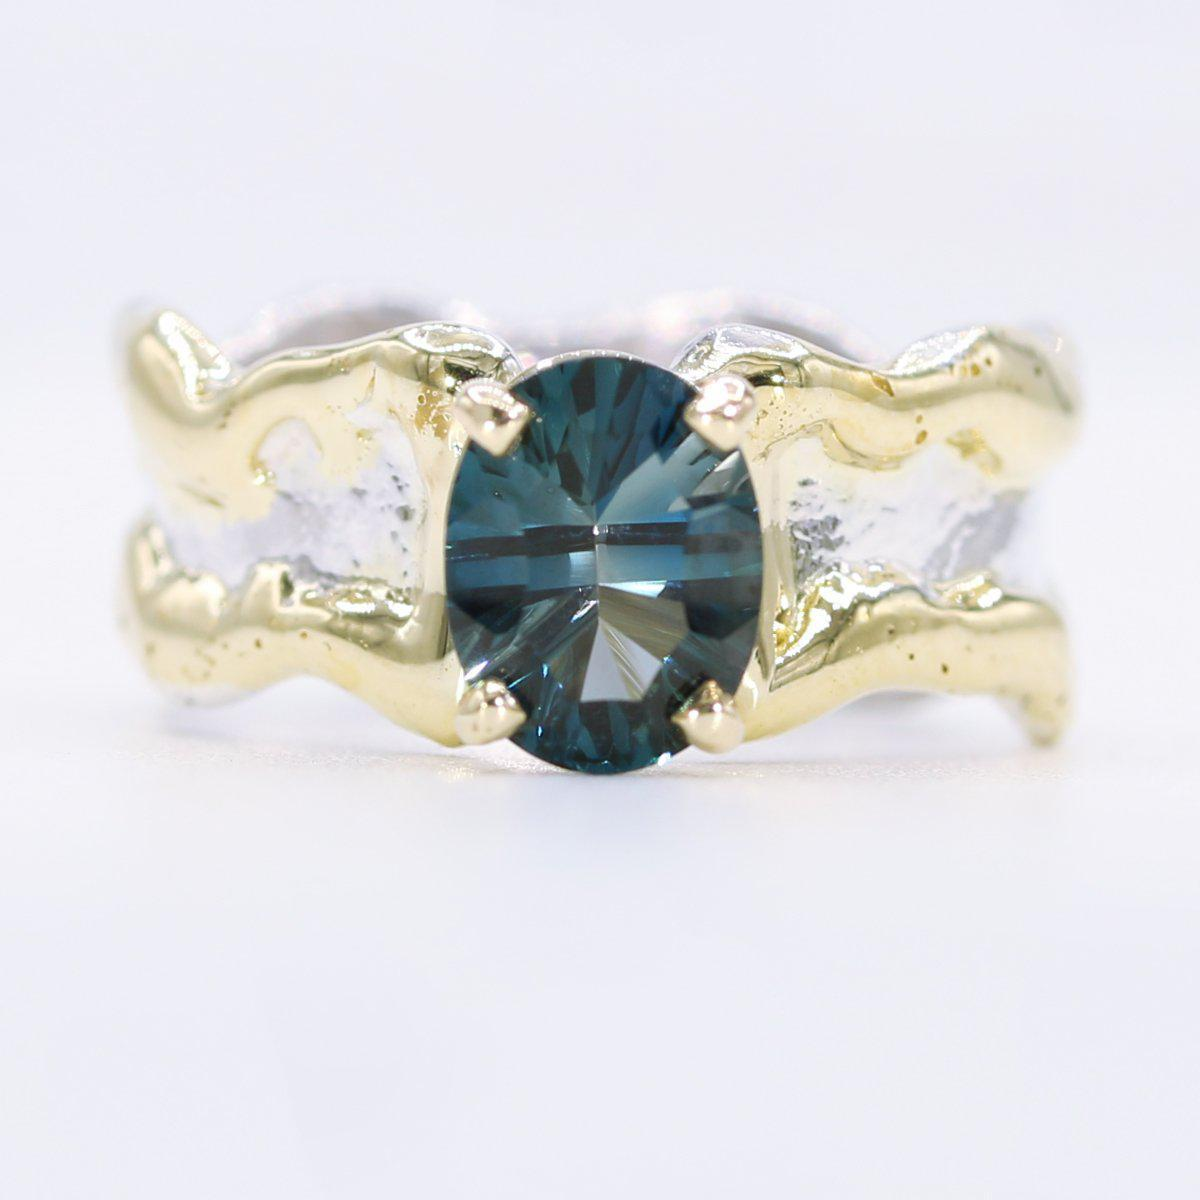 14K Gold & Crystalline Silver London Blue Topaz Ring - 34904-Fusion Designs-Renee Taylor Gallery